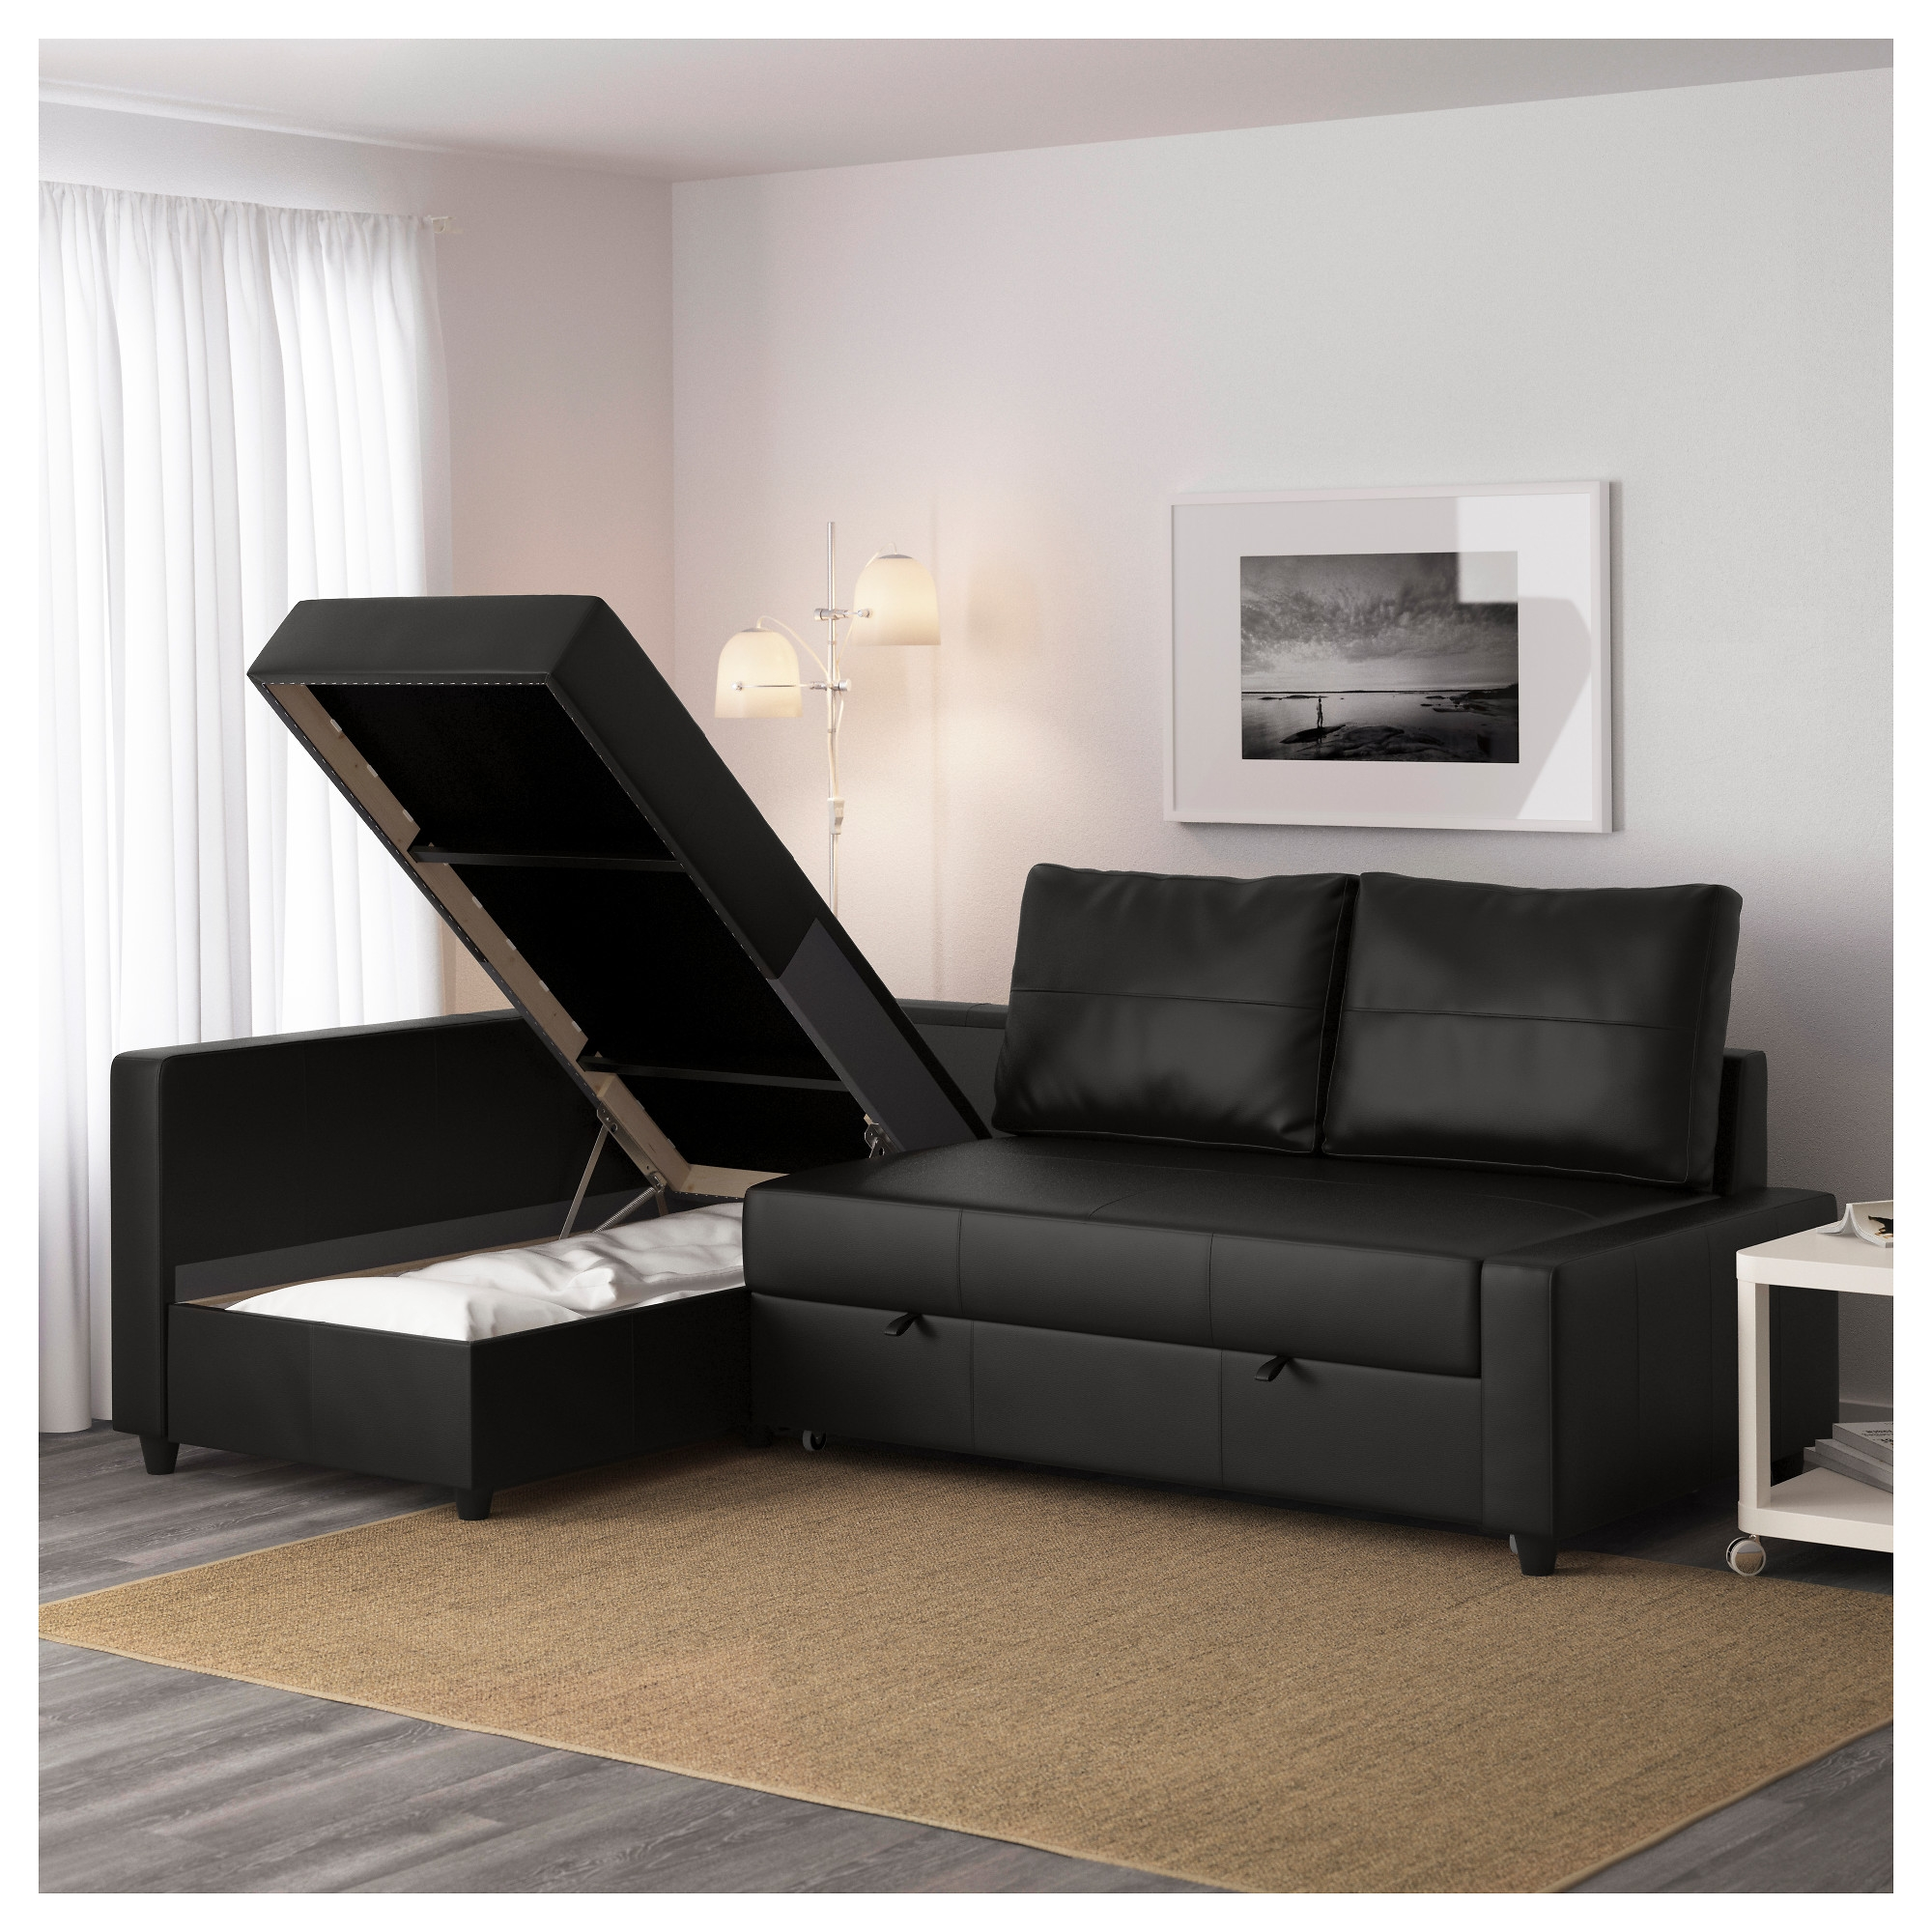 Friheten Corner Sofa Bed With Storage Bomstad Black Ikea Throughout Corner Sofa Bed With Storage Ikea (Image 3 of 15)